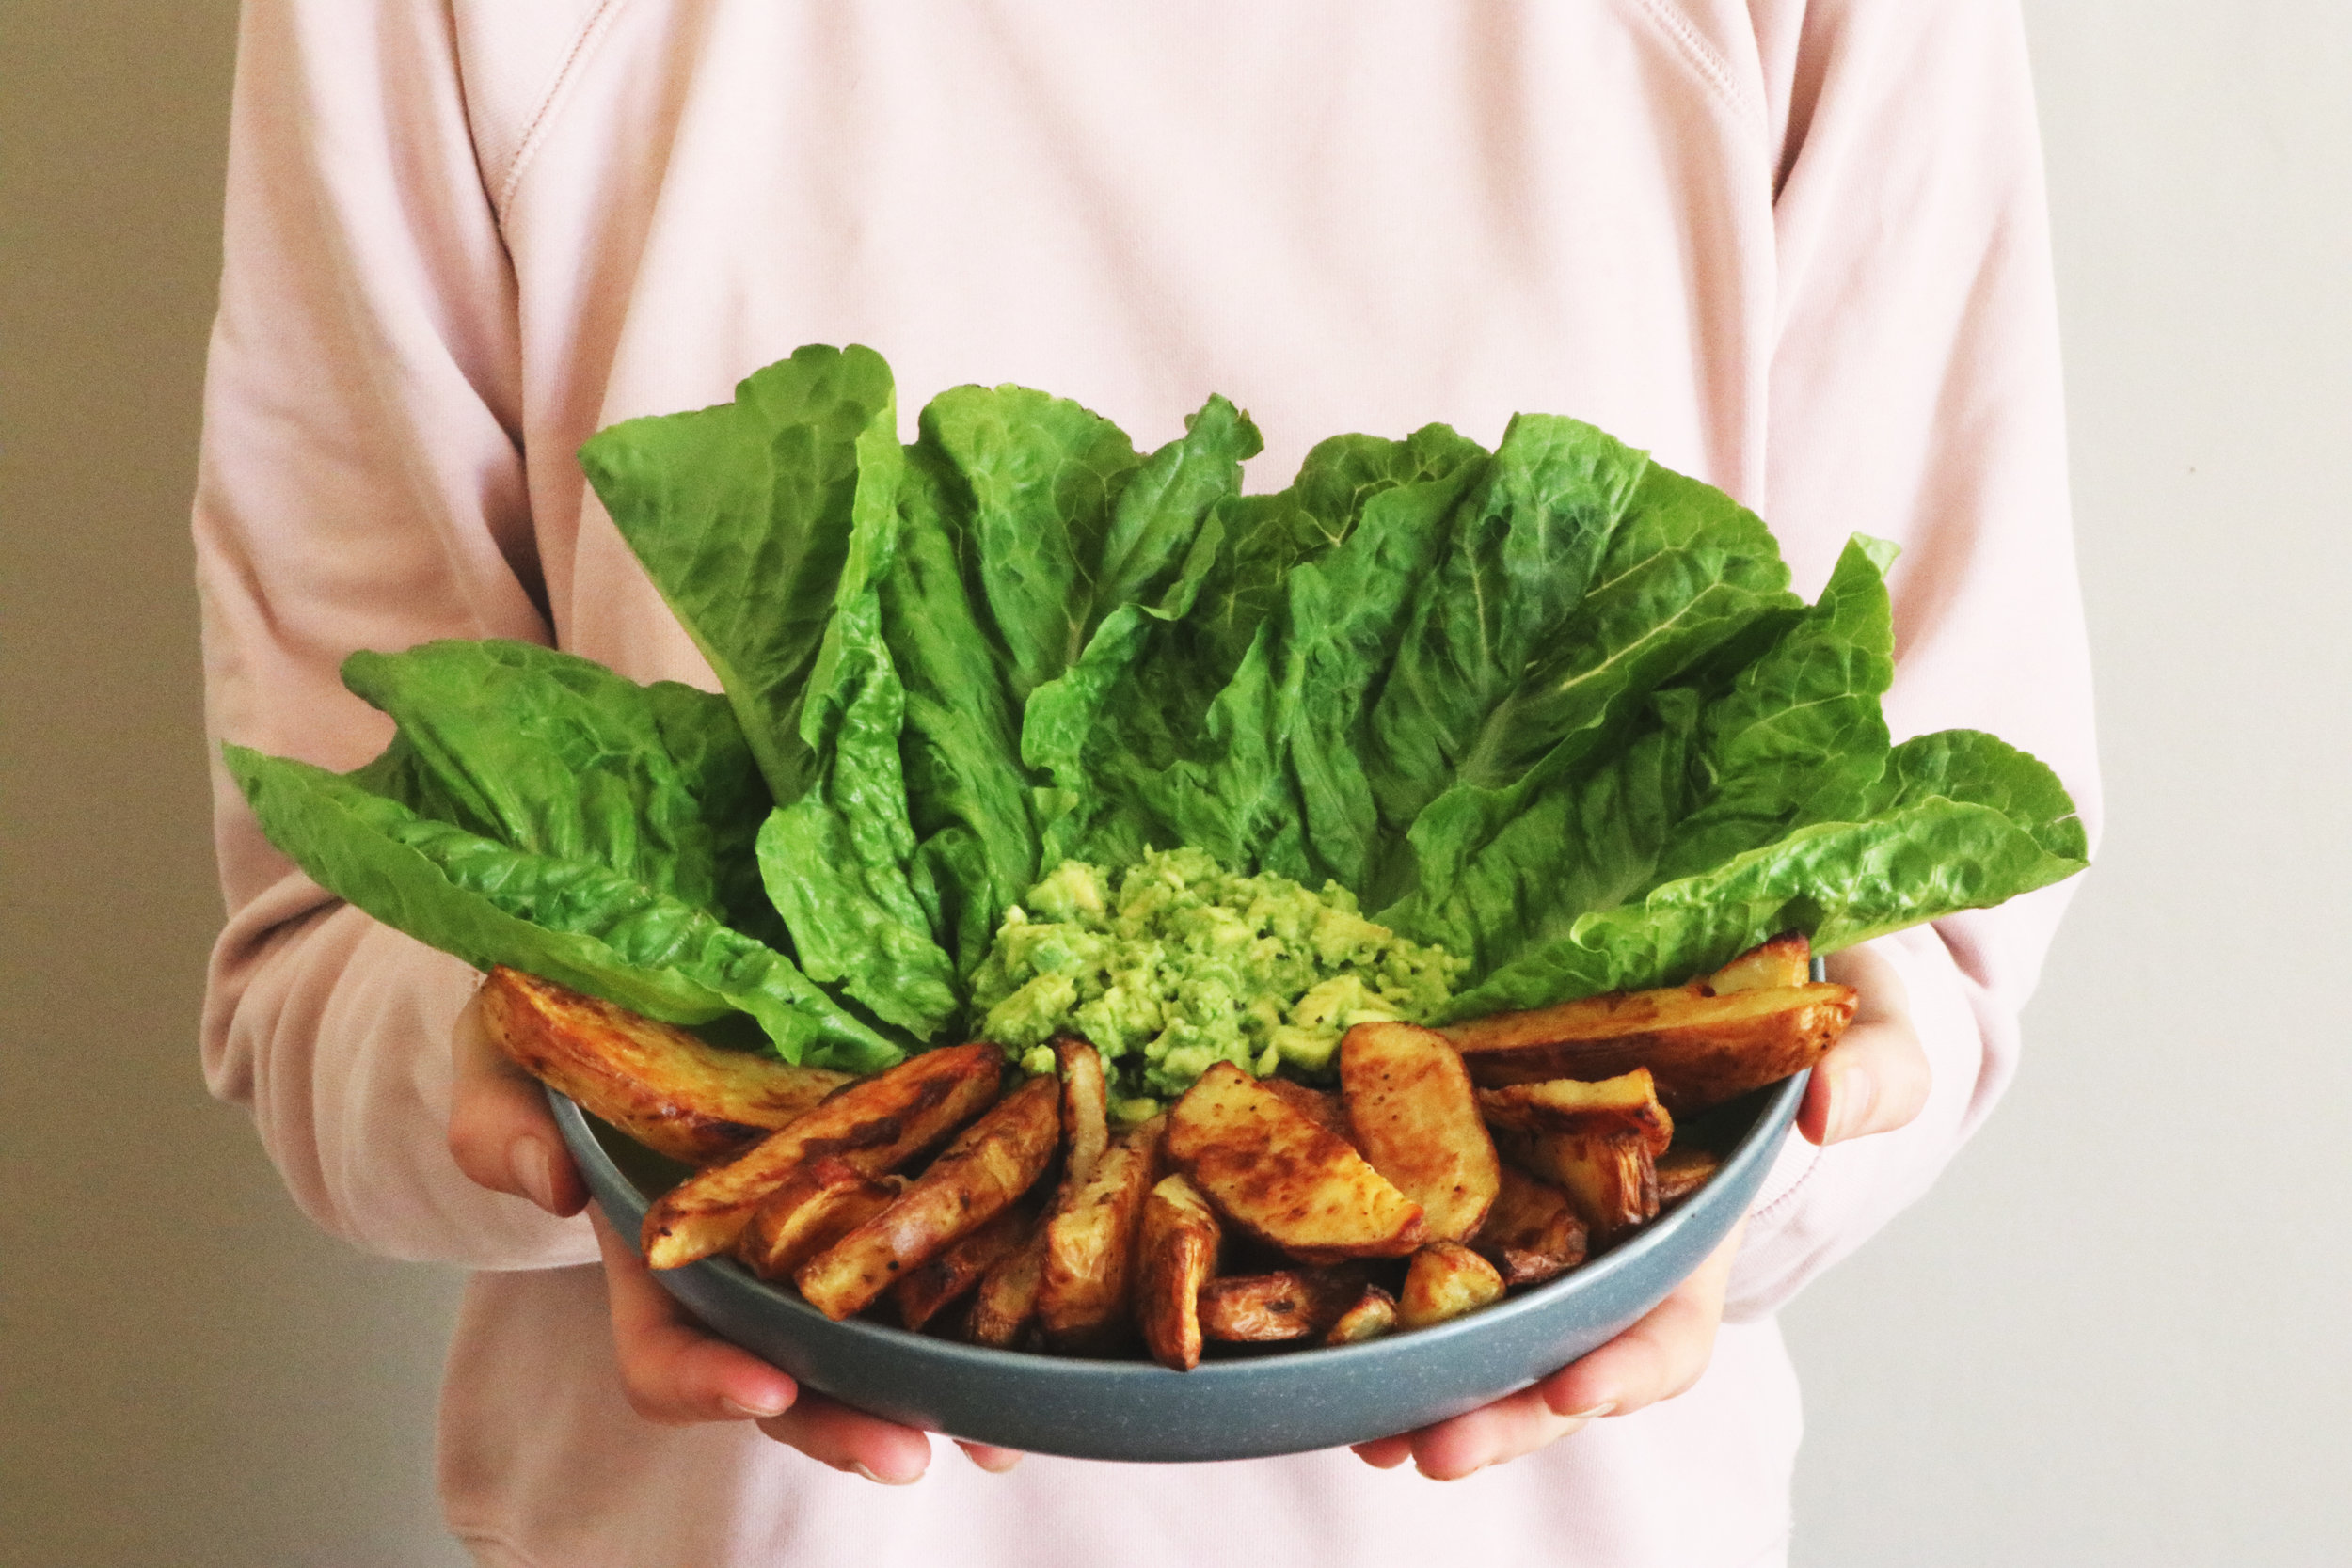 Making your own homemade chips is super easy, and very cheap! Perfect in a lettuce wrap with some avocado. - prep time 5 mins total time45 mins  serves 2